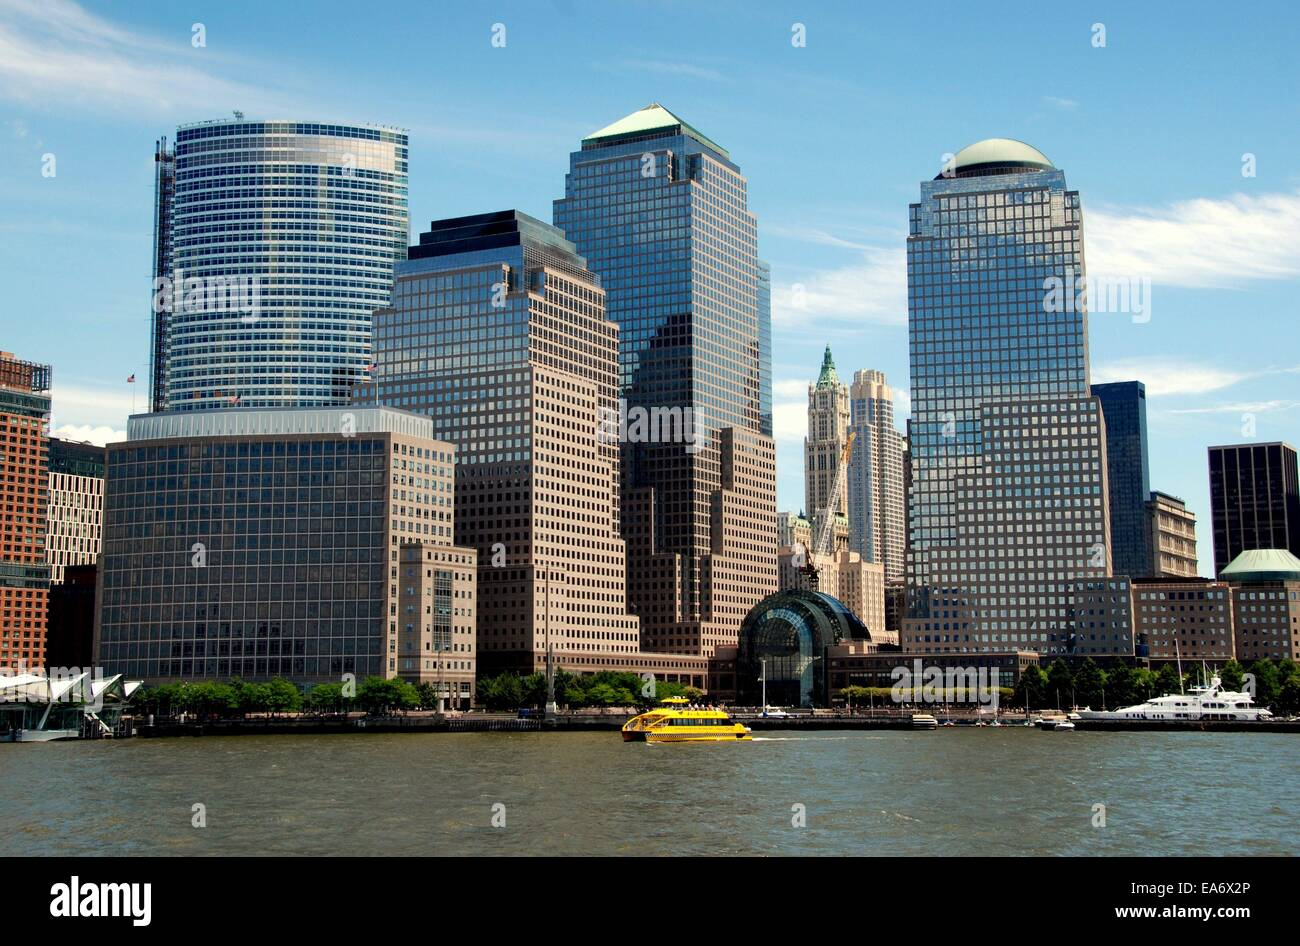 nyc the modern towers of the world financial center and the